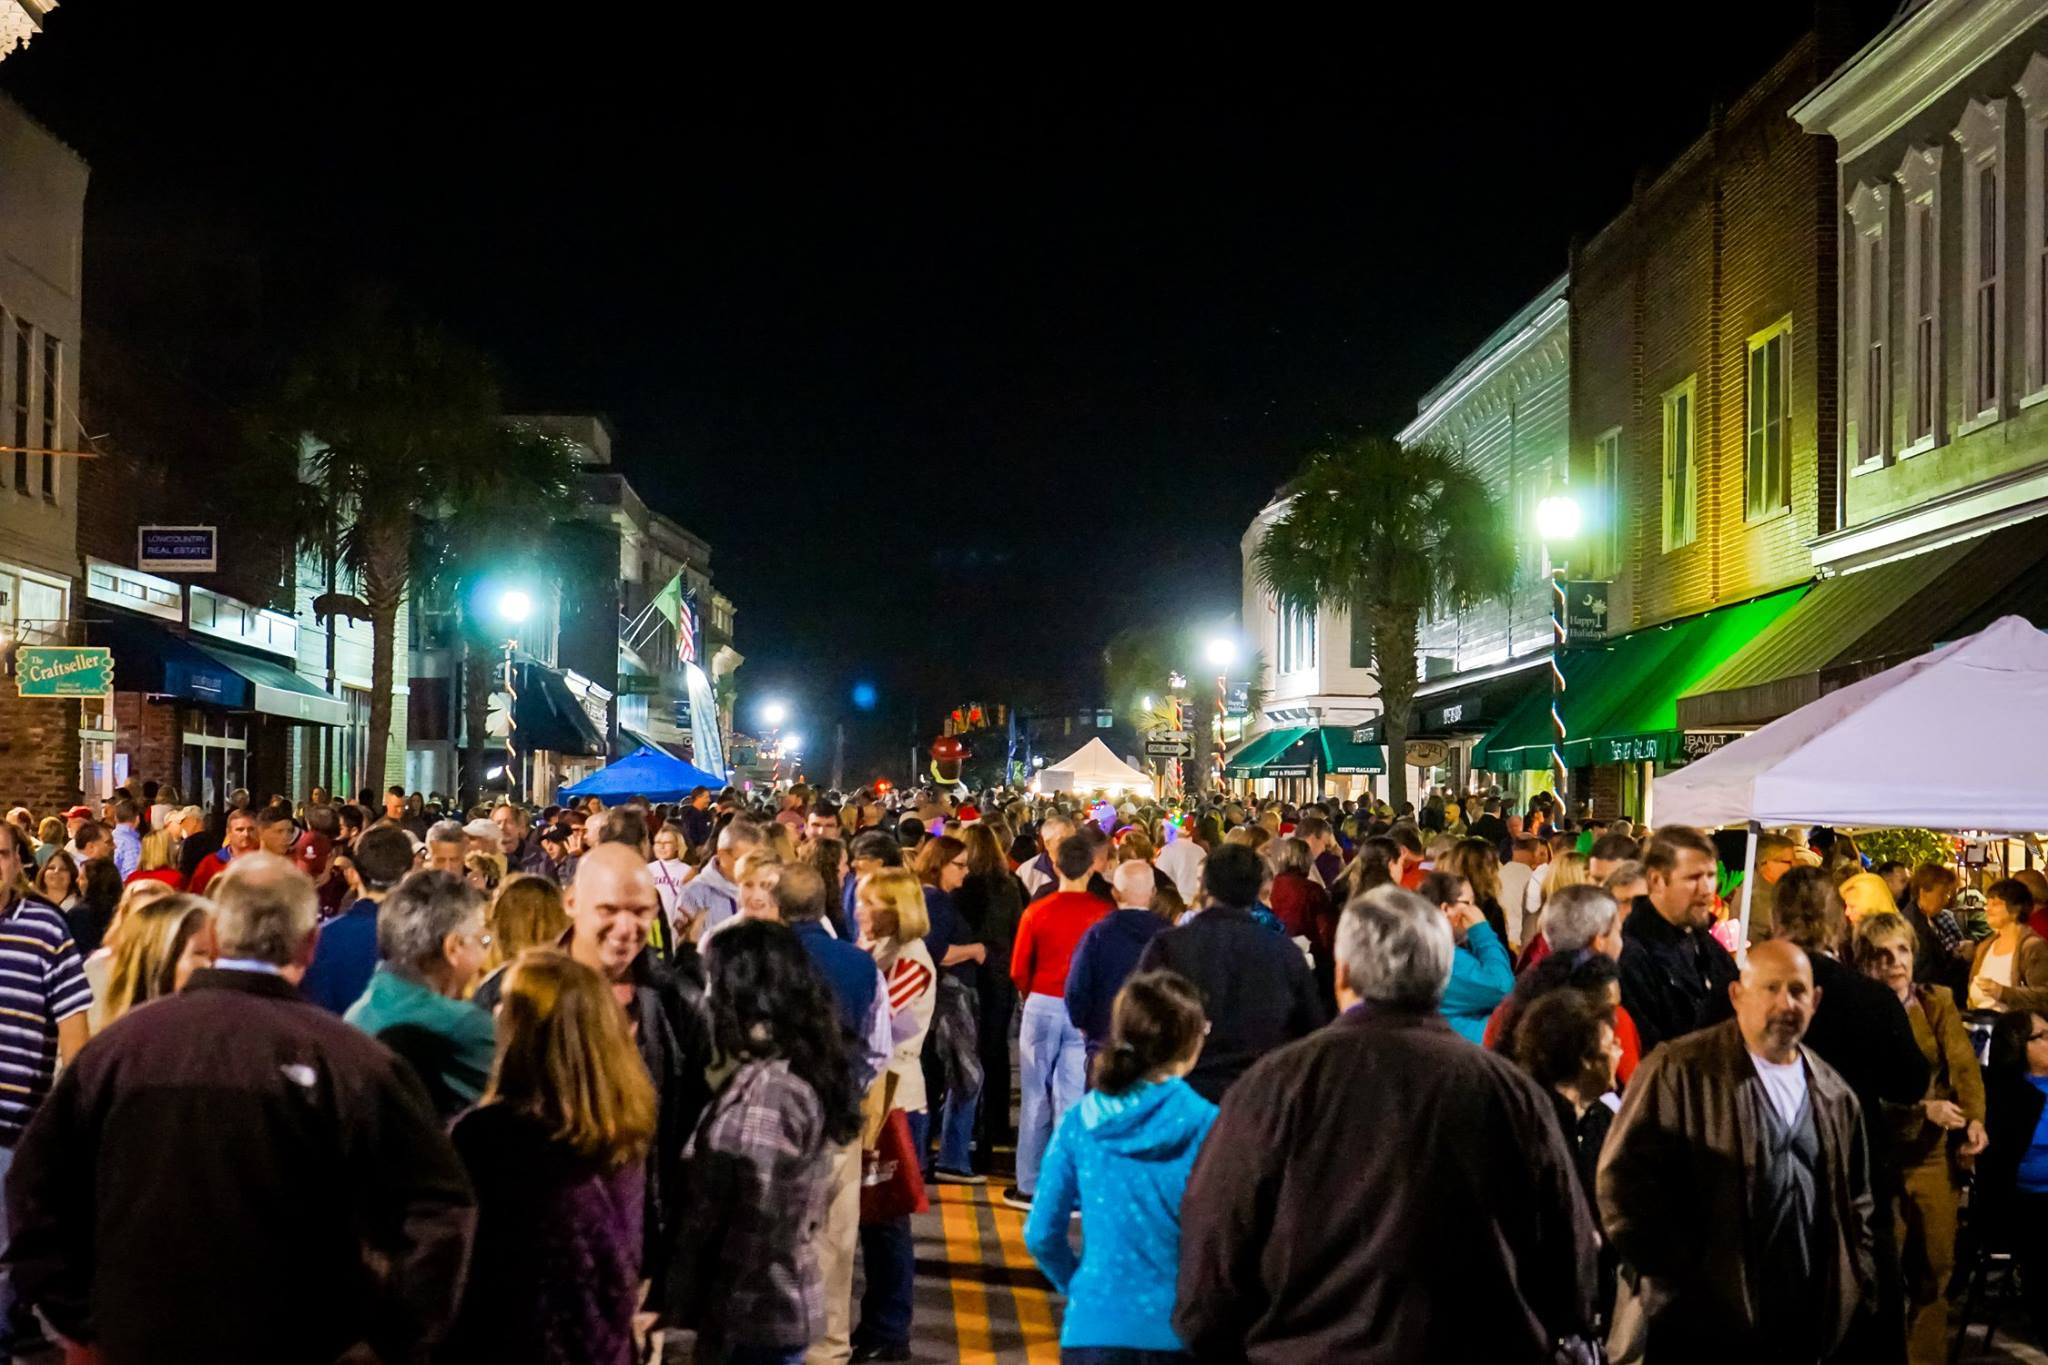 10 December Holiday Events You Must Attend In Beaufort